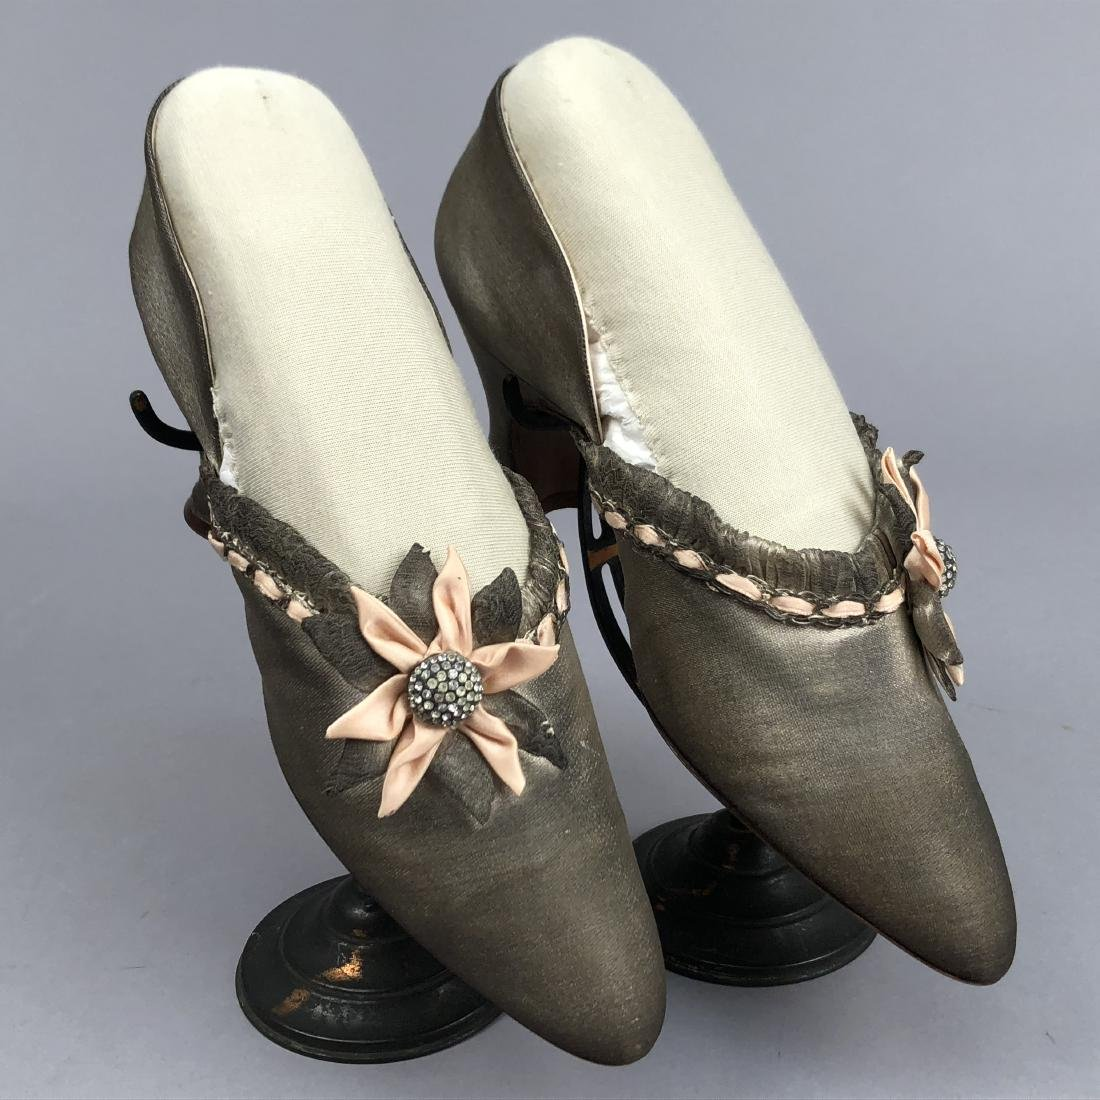 SILVER LAME SLIPPERS with RHINESTONES, 1930s - 2